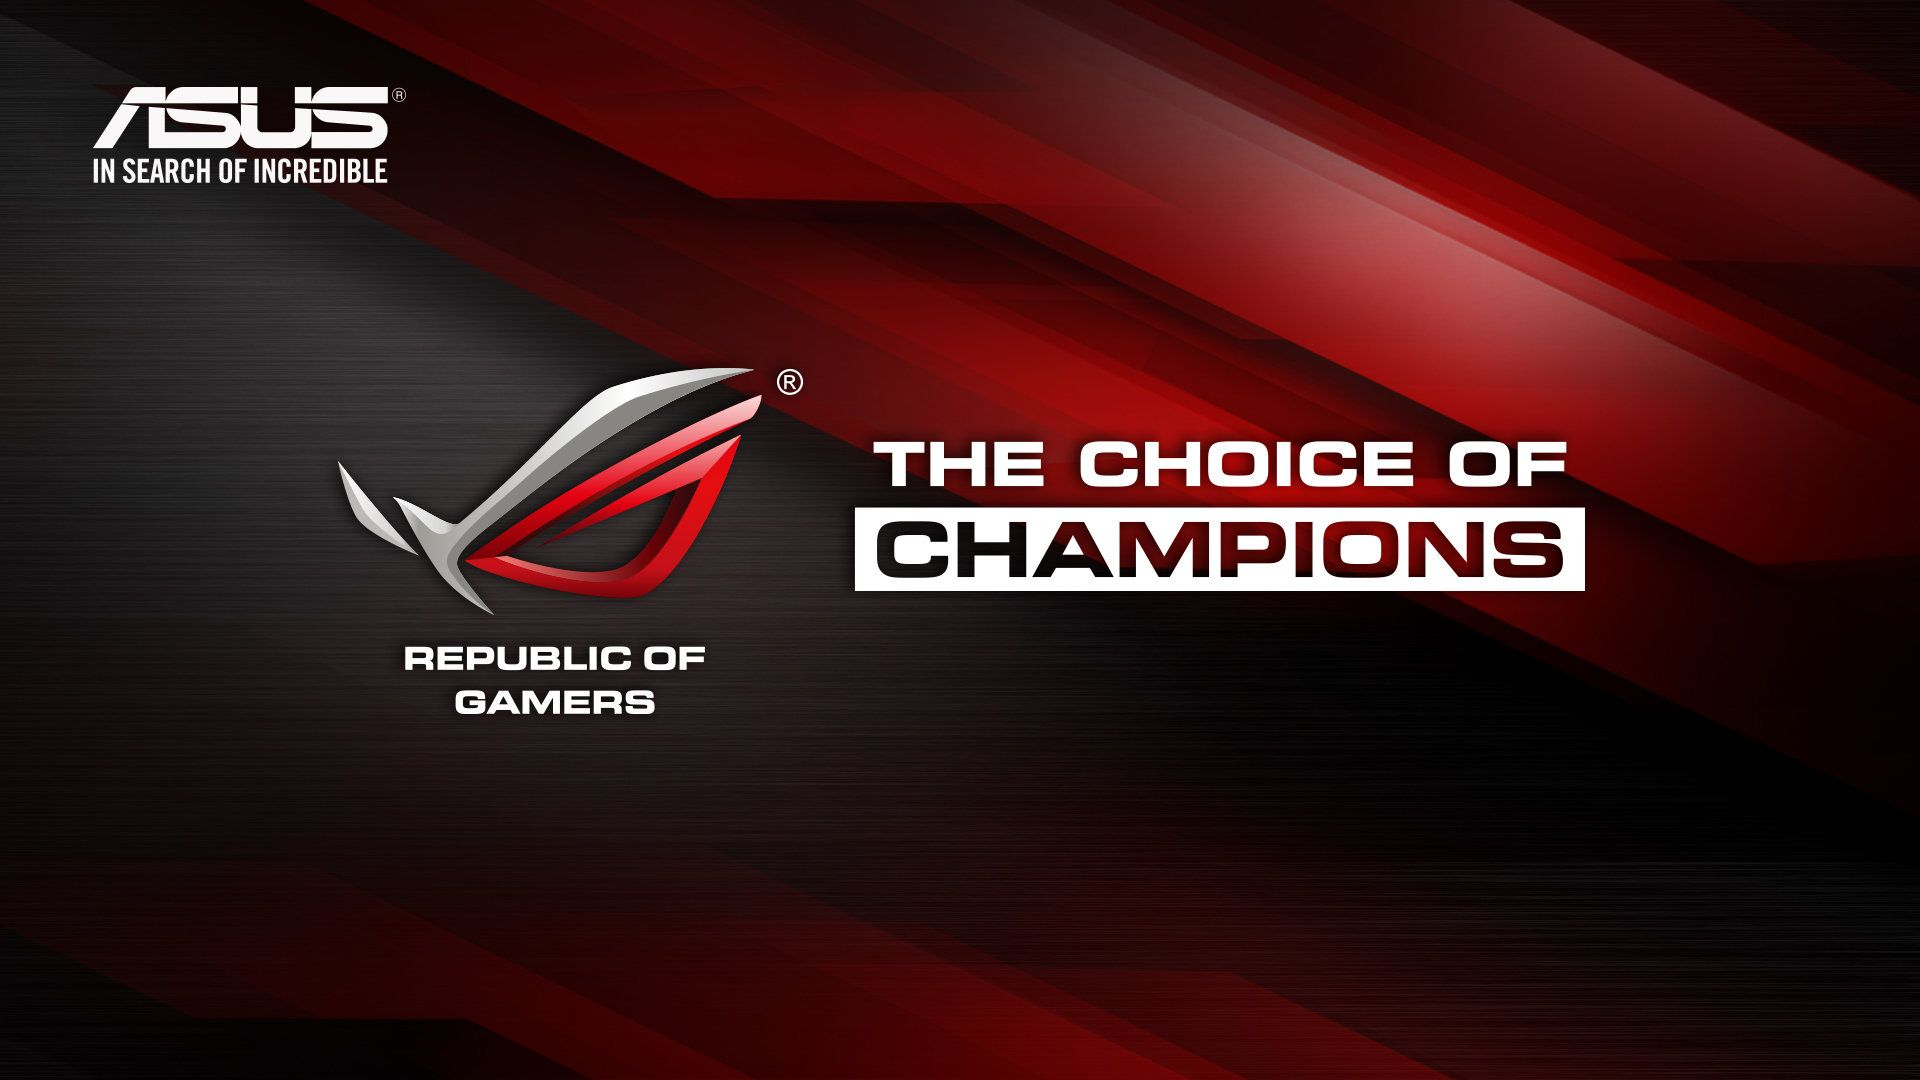 Asus Rog Wallpaper High Resolution For Free Wallpaper în